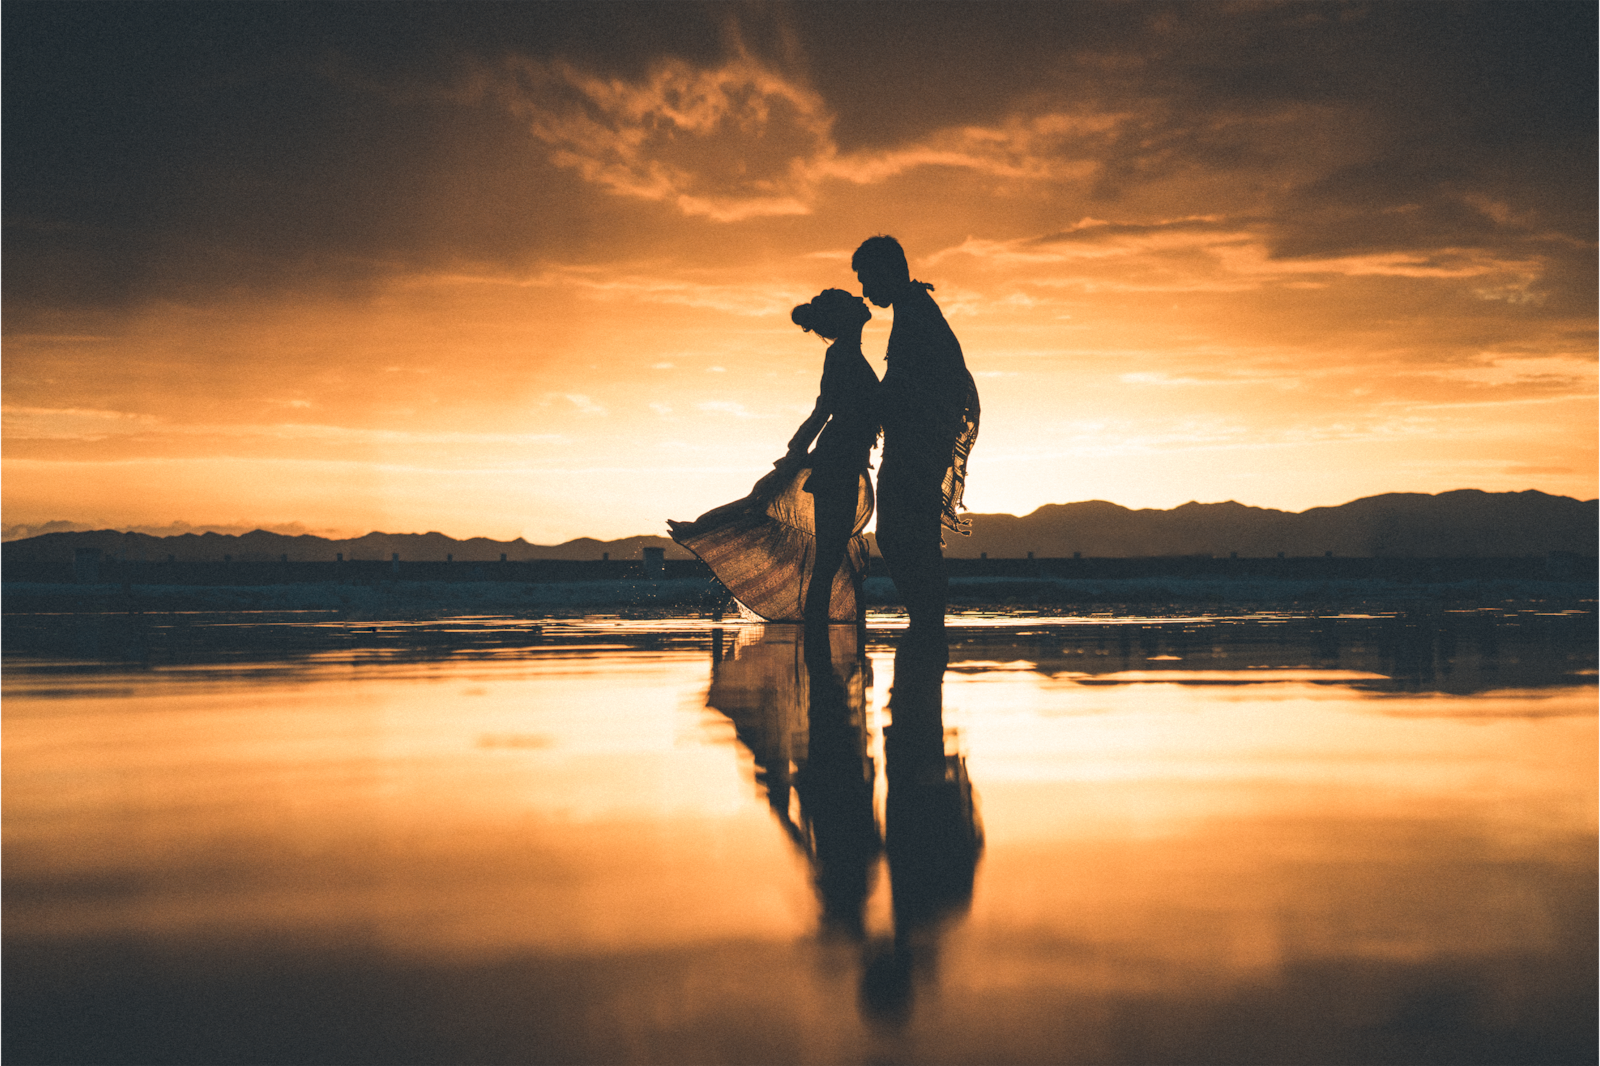 couple standing in sunset alpha 7RIII